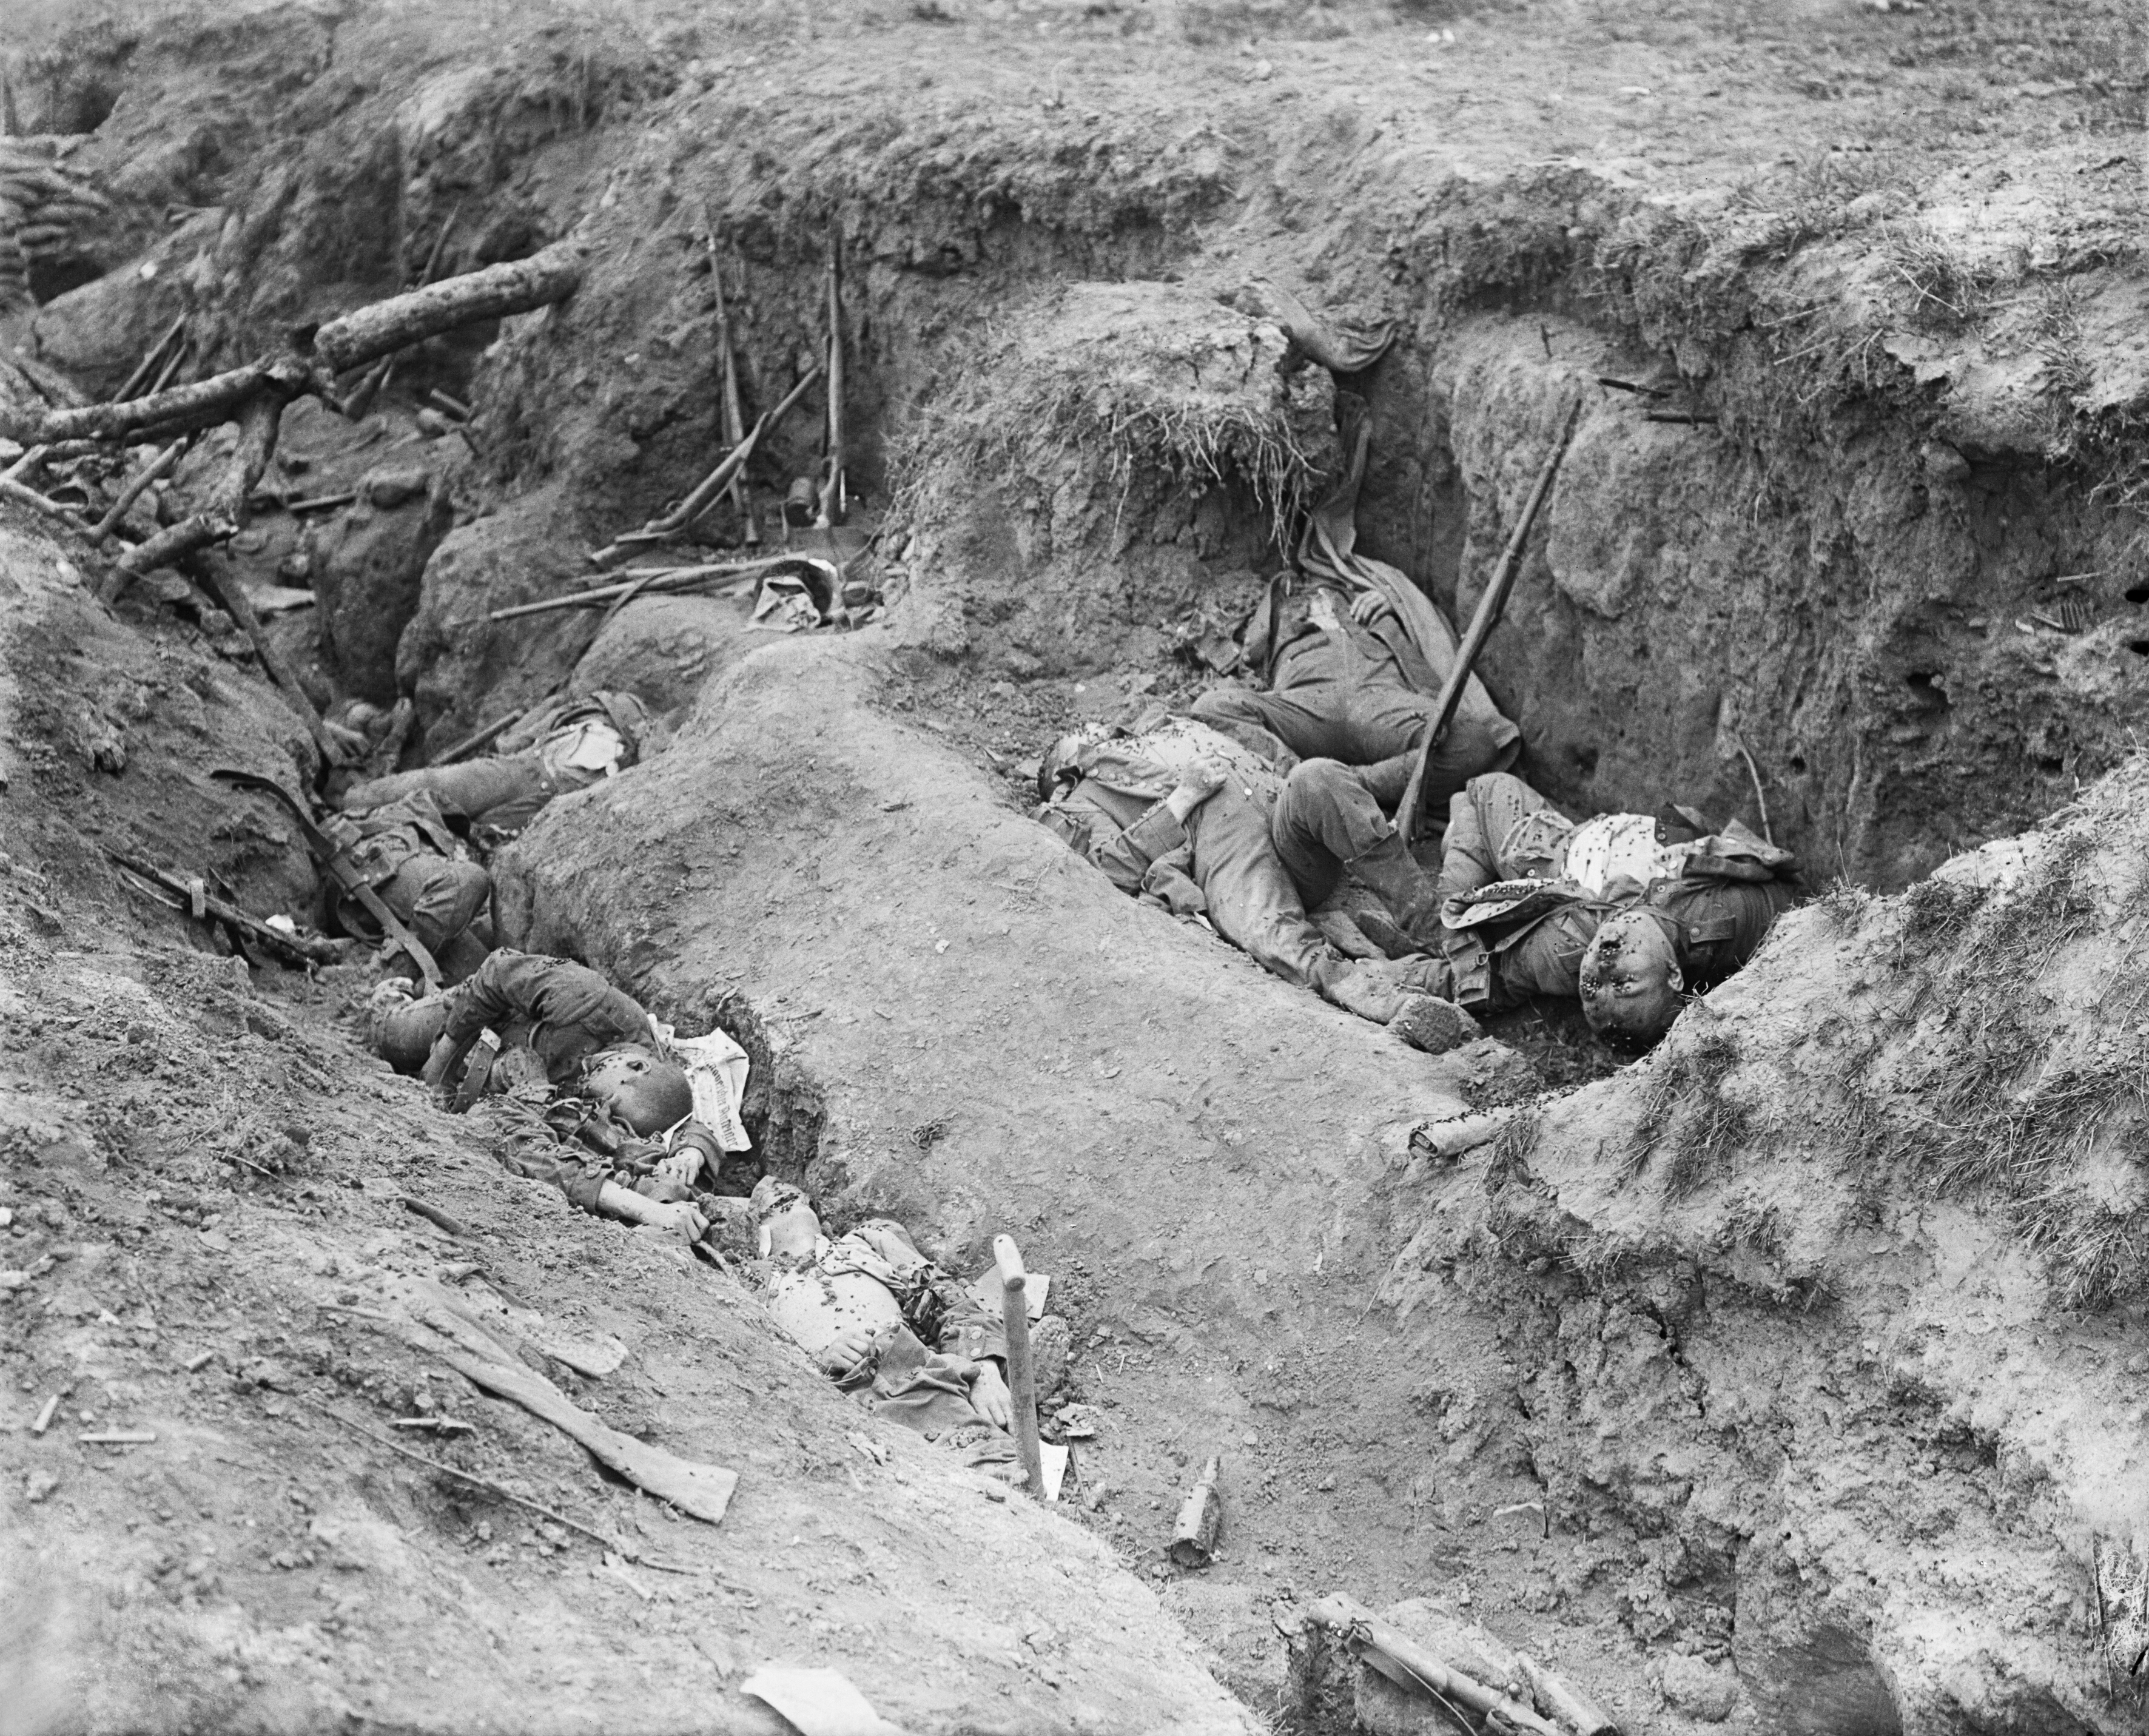 https://upload.wikimedia.org/wikipedia/commons/a/ab/The_Battle_of_the_Somme%2C_July-november_1916_Q4218.jpg